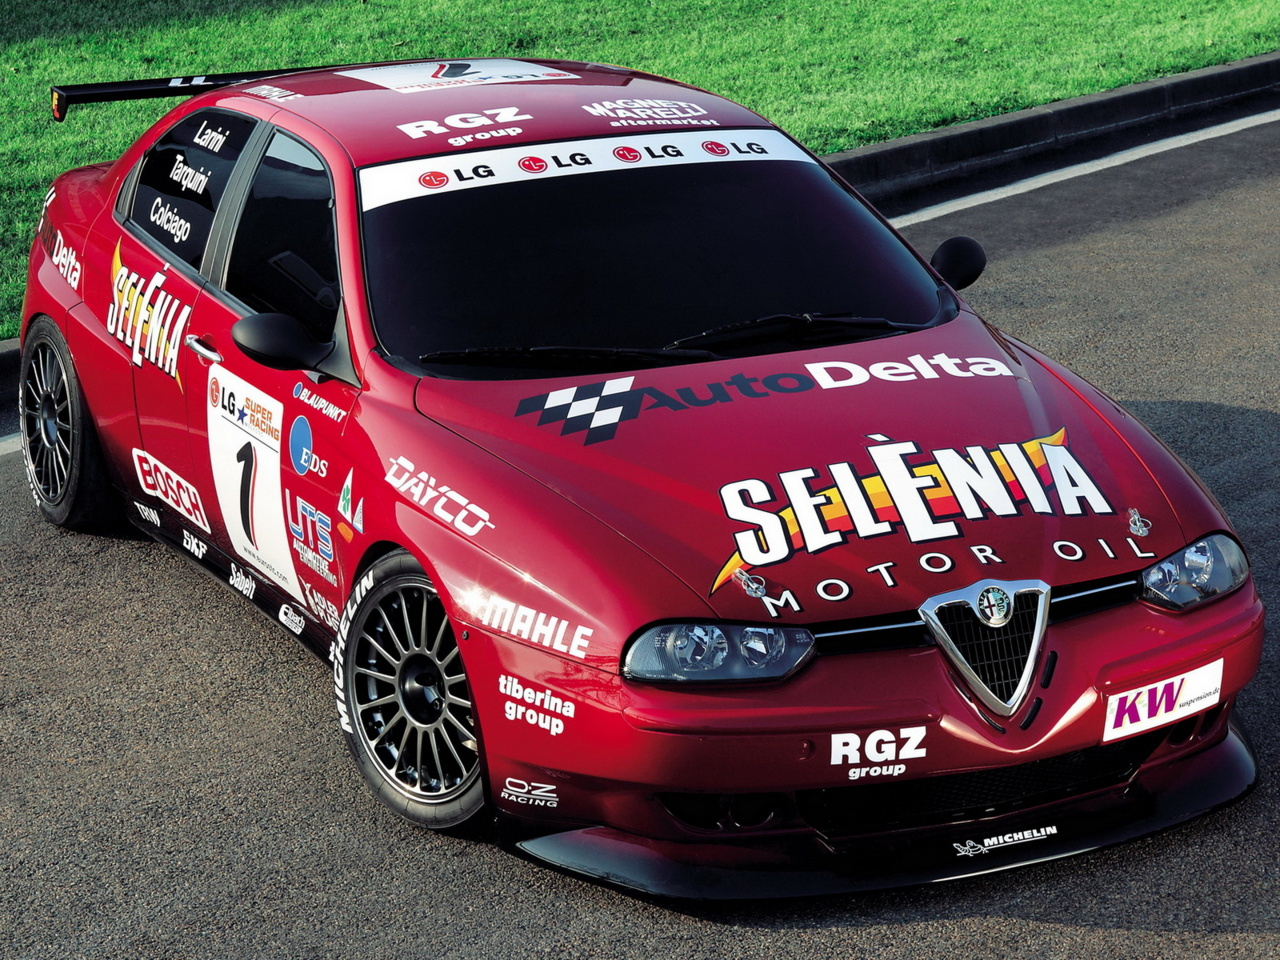 2018 Alfa Romeo 156 photo - 3